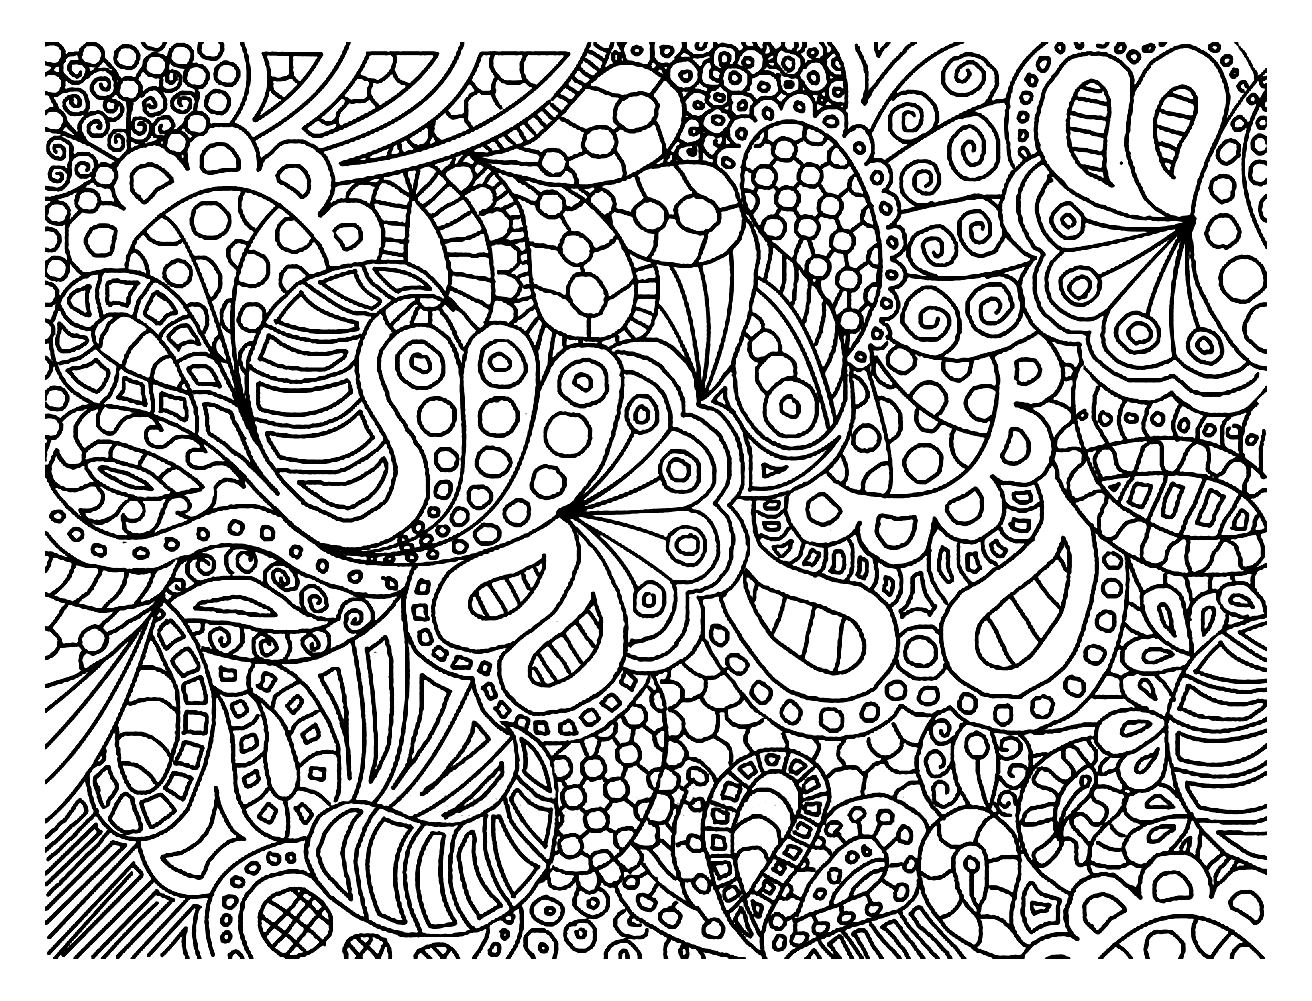 Doodling / Doodle art - Coloring pages for adults - Page 2